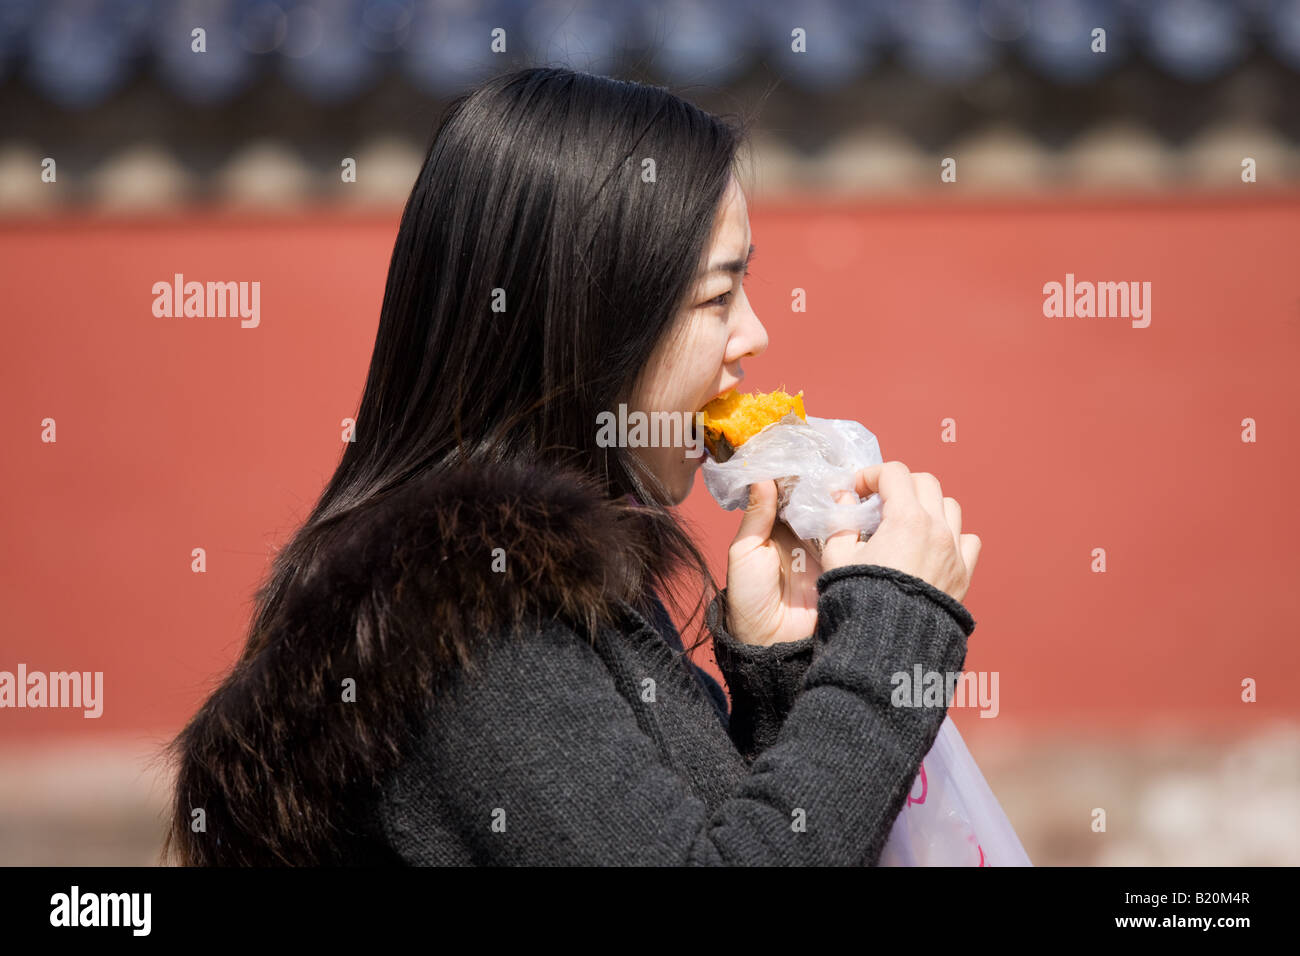 Girl eating yam sweet potato at the Ming Dynasty Temple of Heaven Beijing China - Stock Image